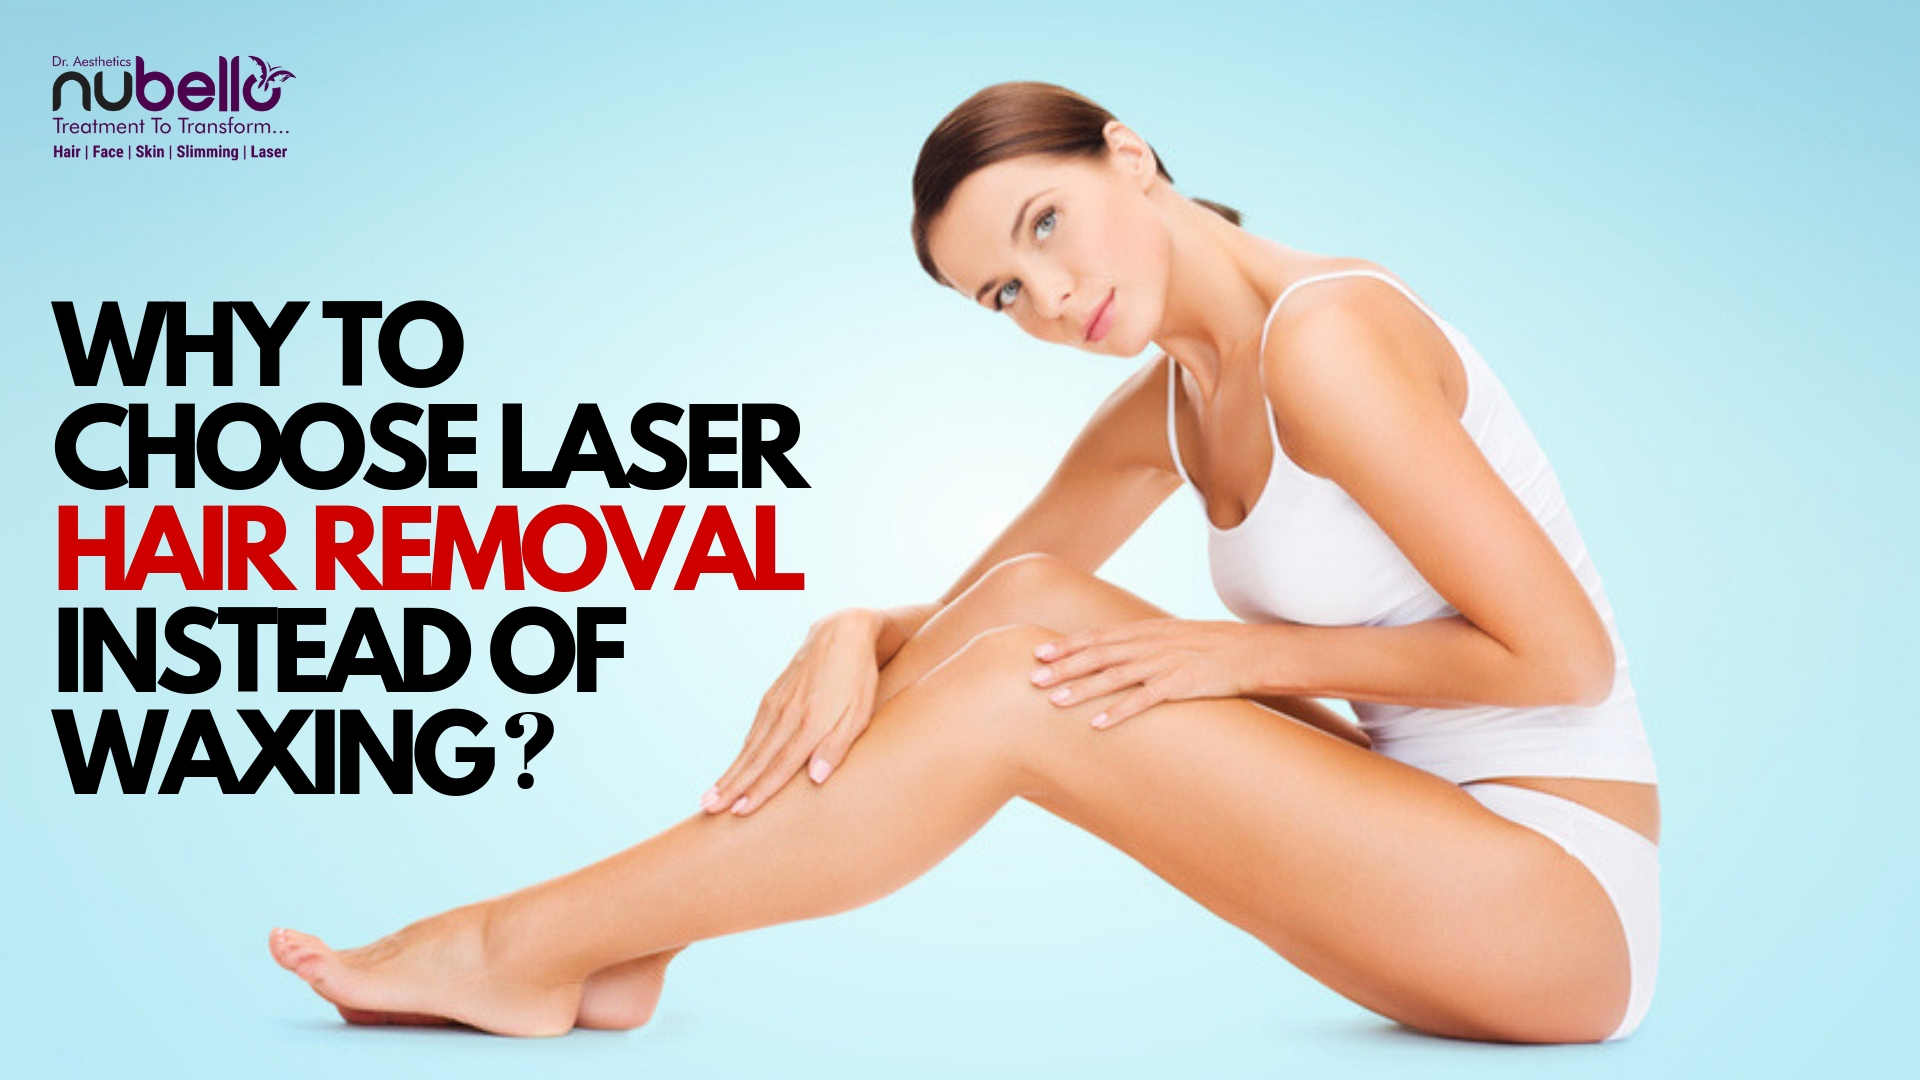 Laser Hair Removal over waxing- Why?